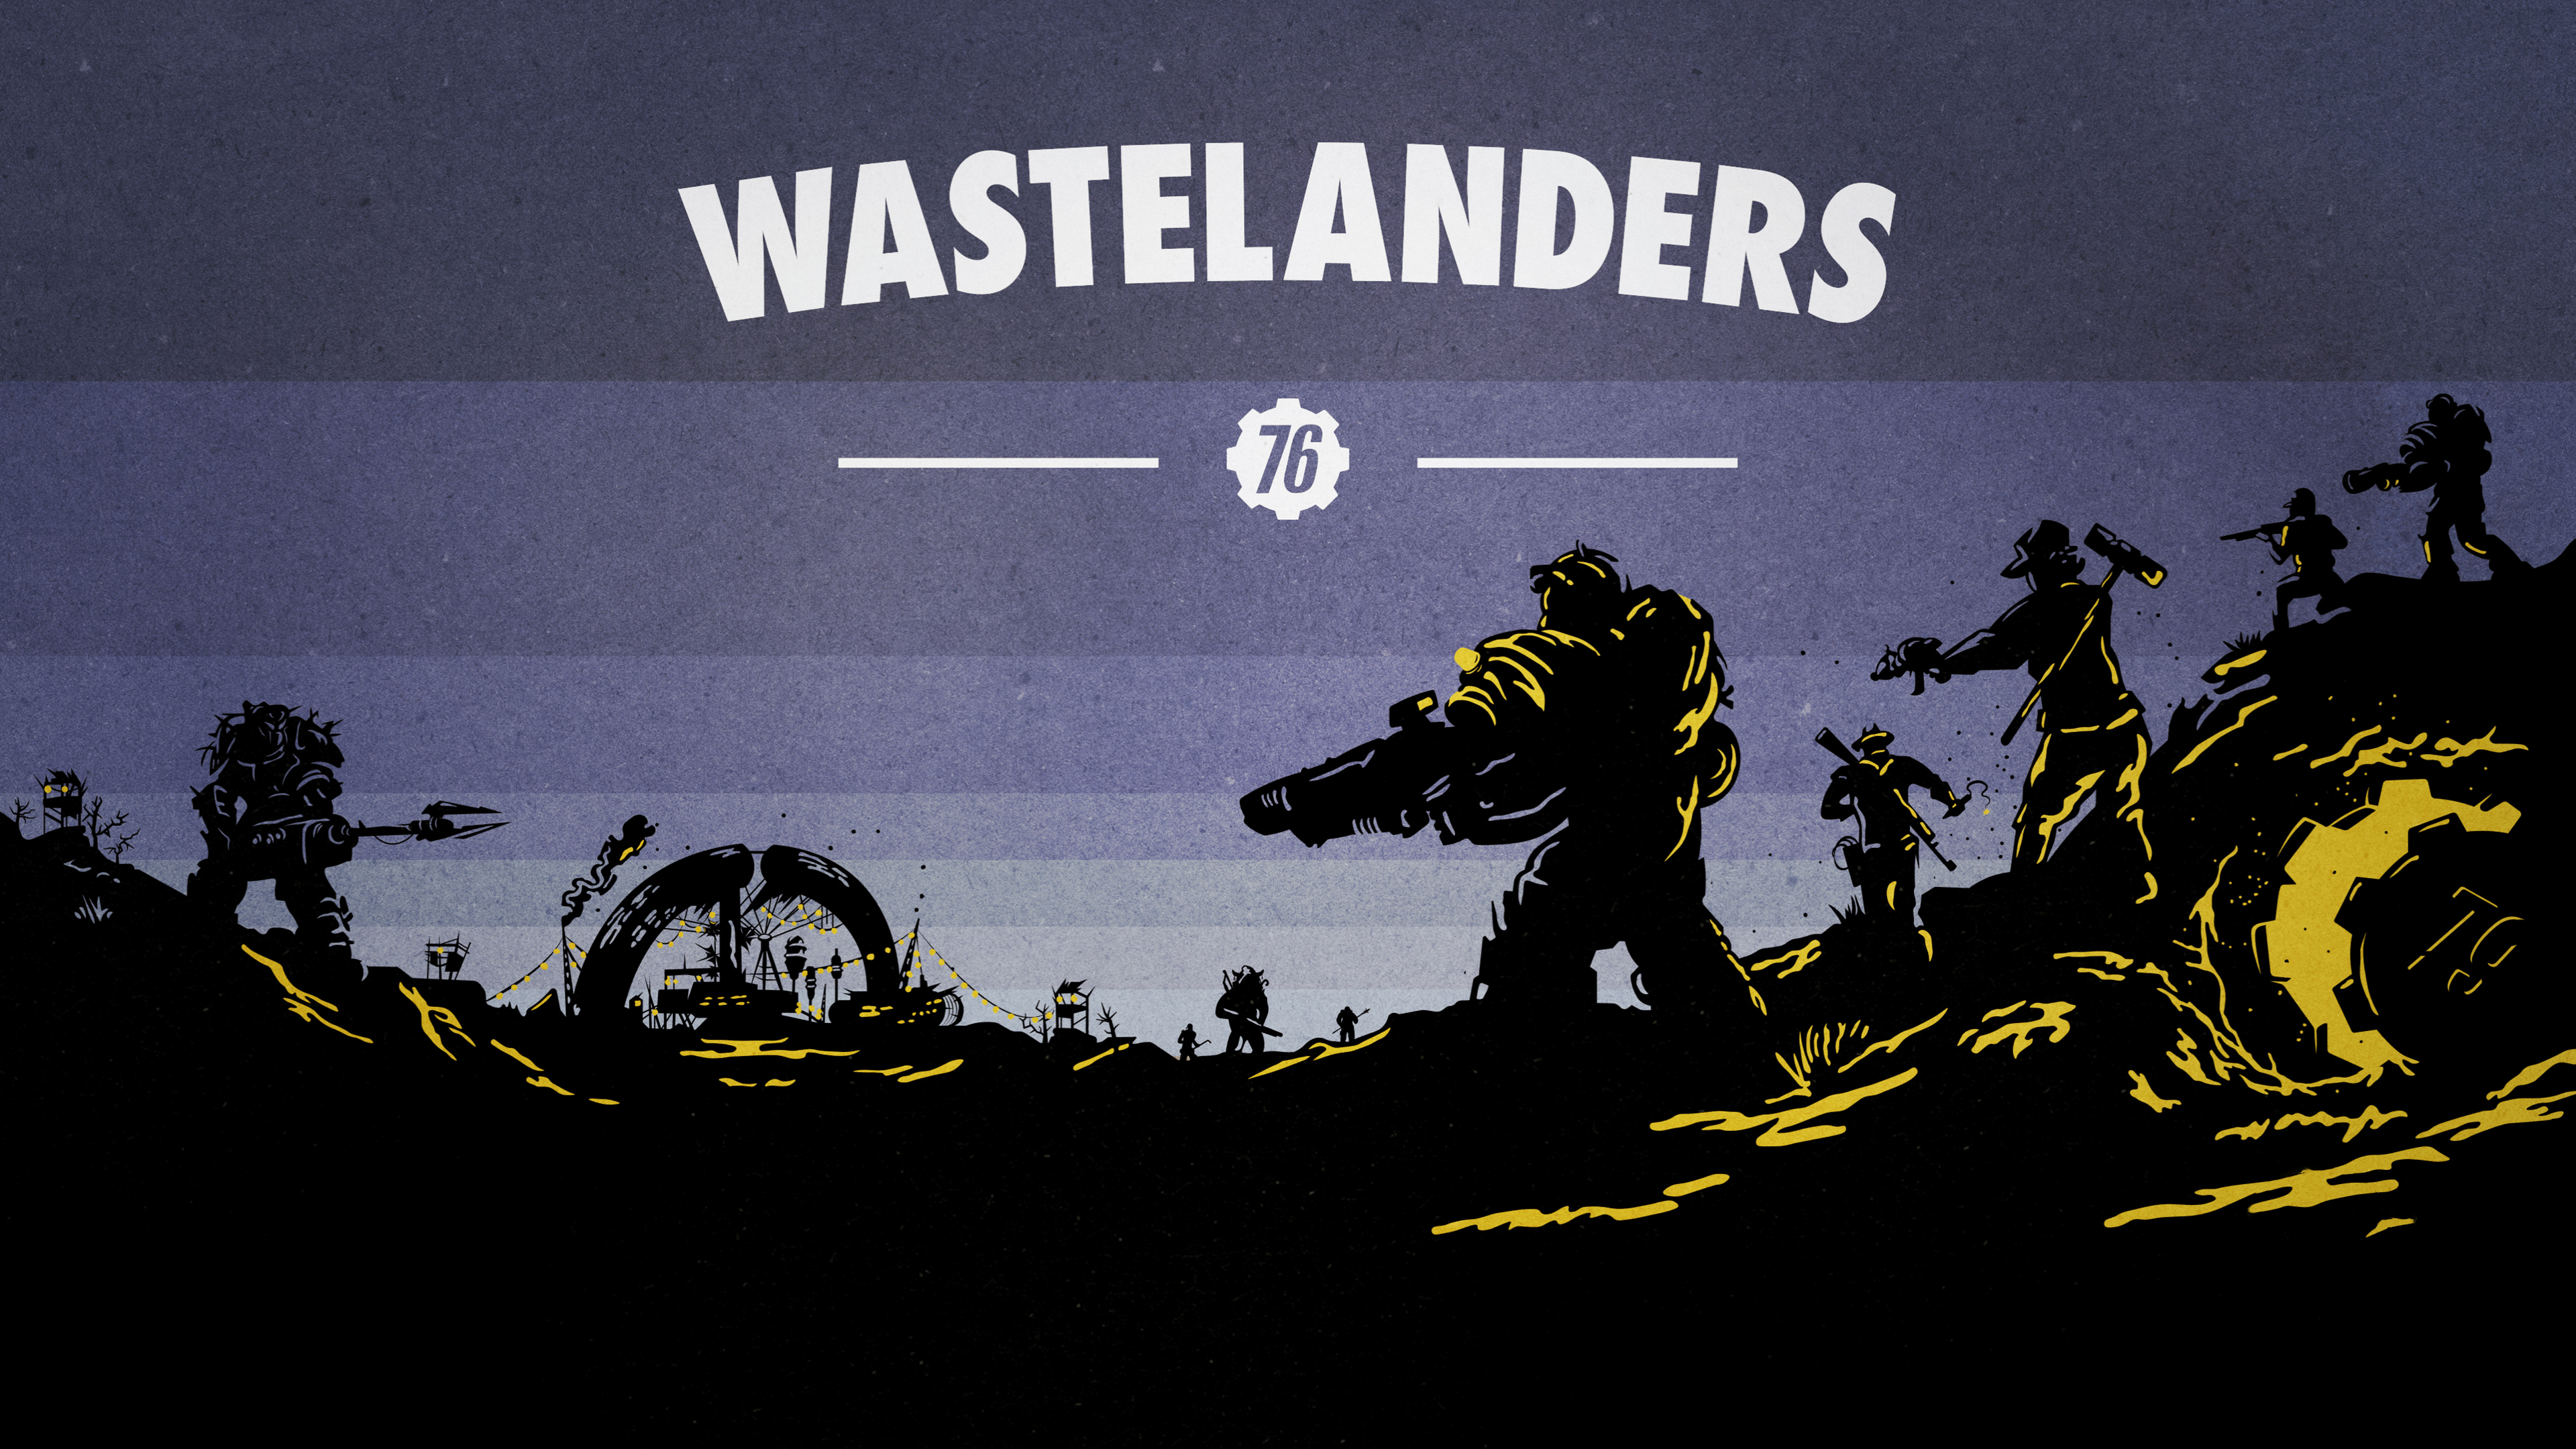 3840x2160 4k Fallout 76 Wastelanders 4k Wallpaper Hd Games 4k Wallpapers Images Photos And Background